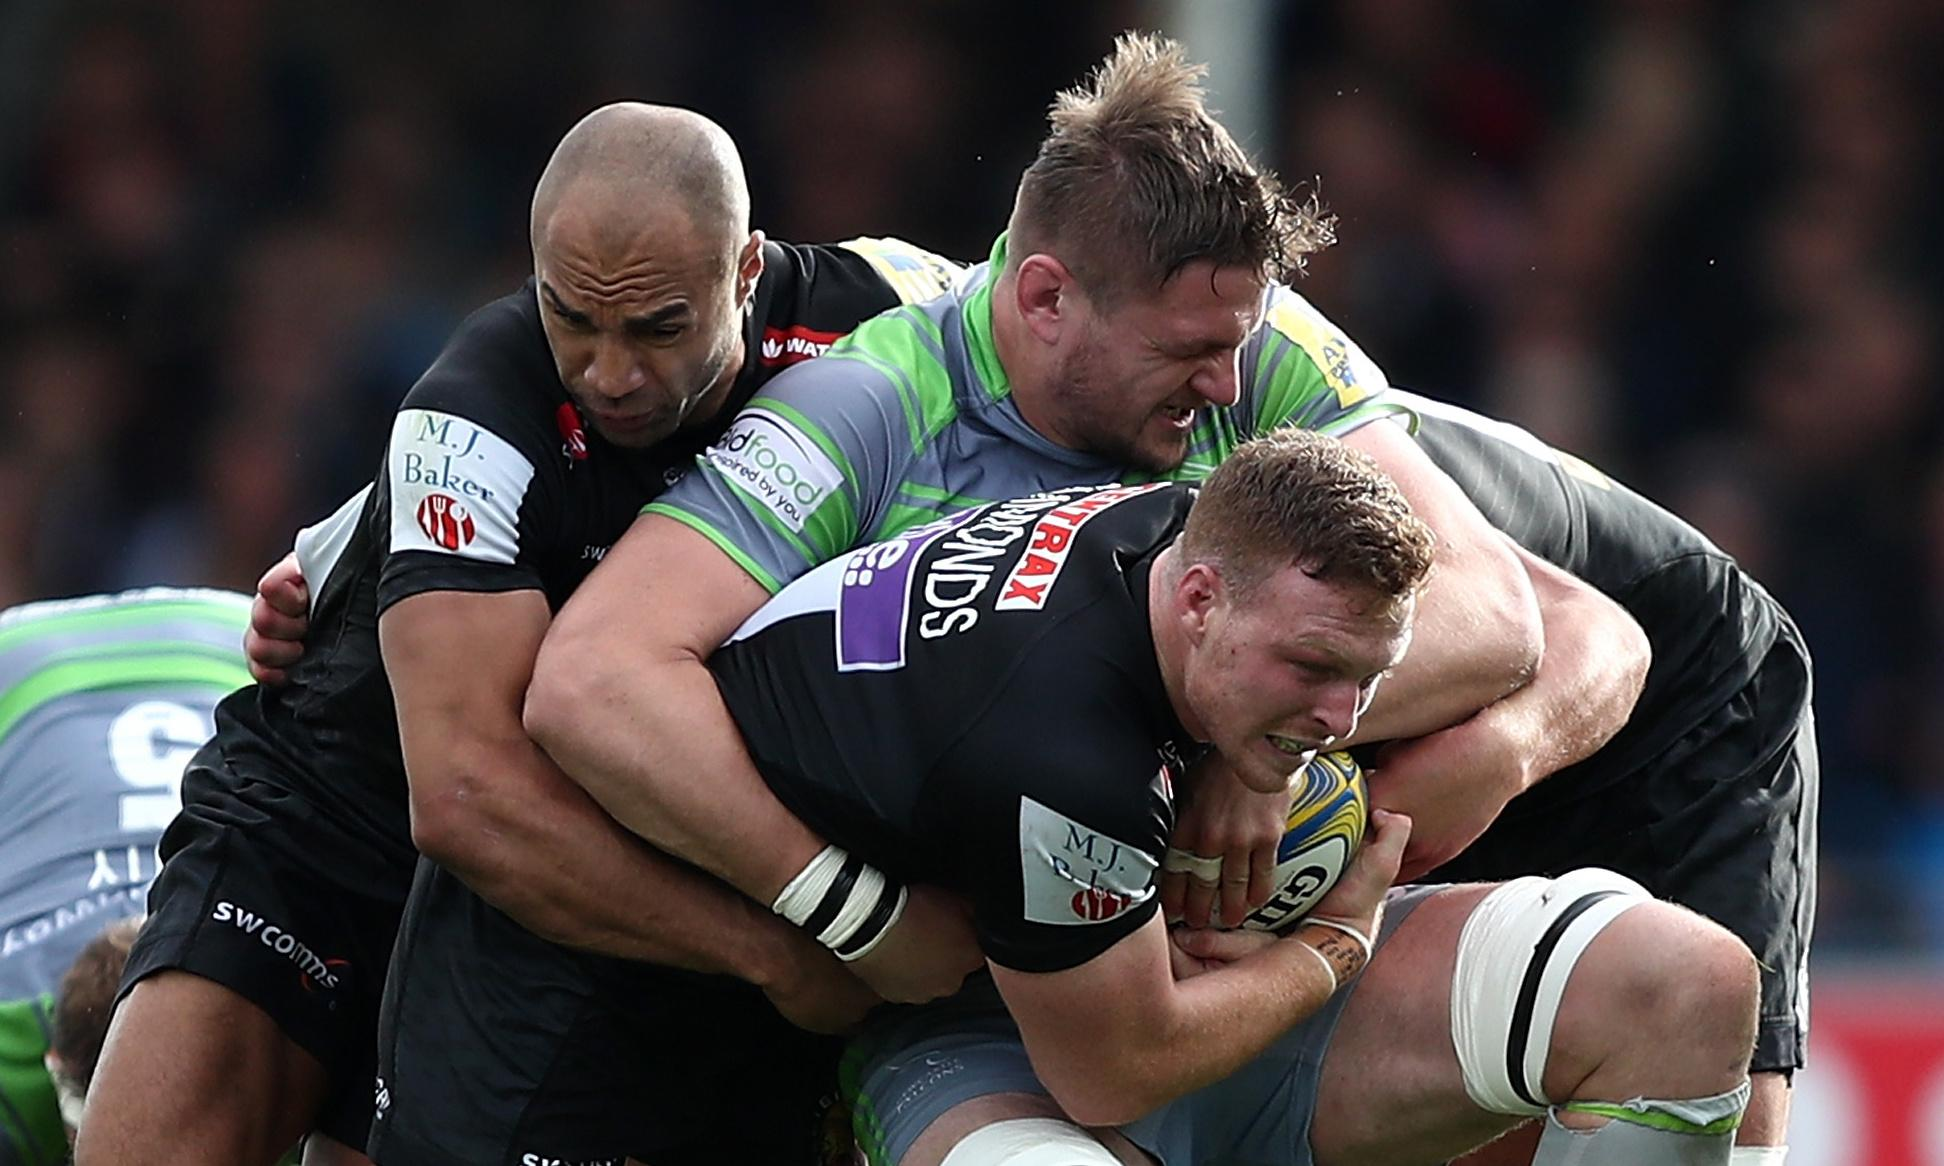 Newcastle forward Calum Green cited for allegedly biting opponent